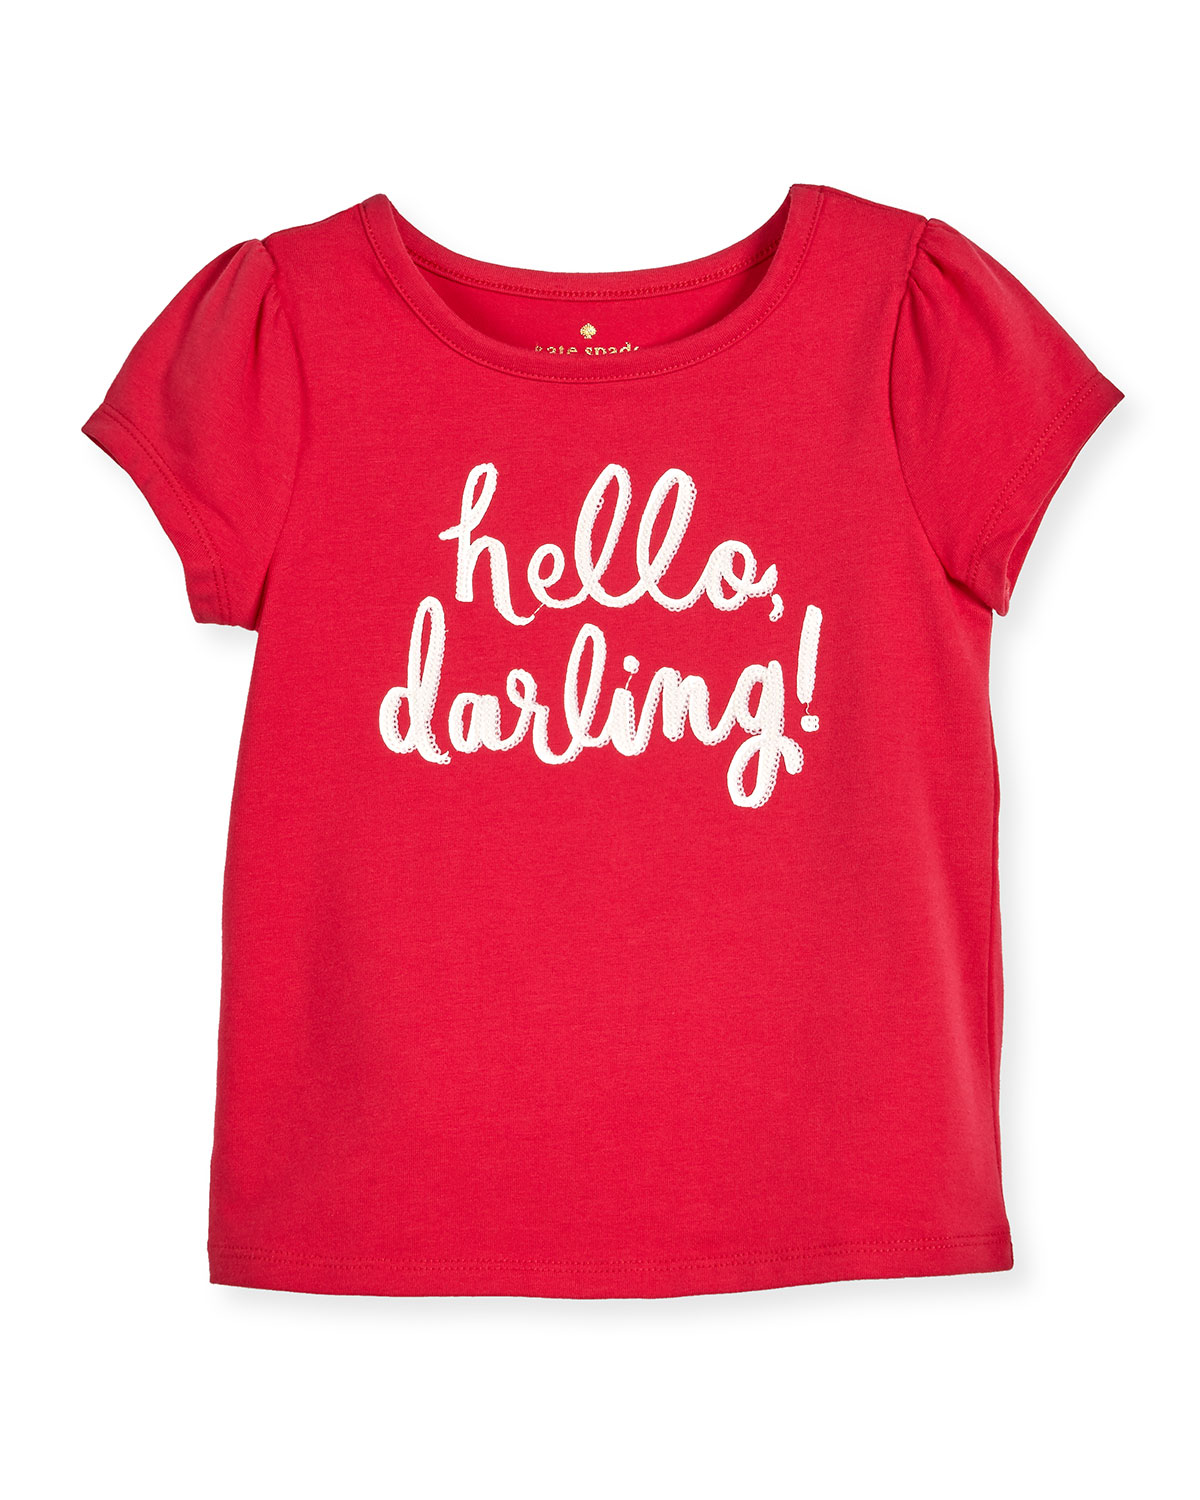 hello darling stretch jersey tee, pink, size 2-6